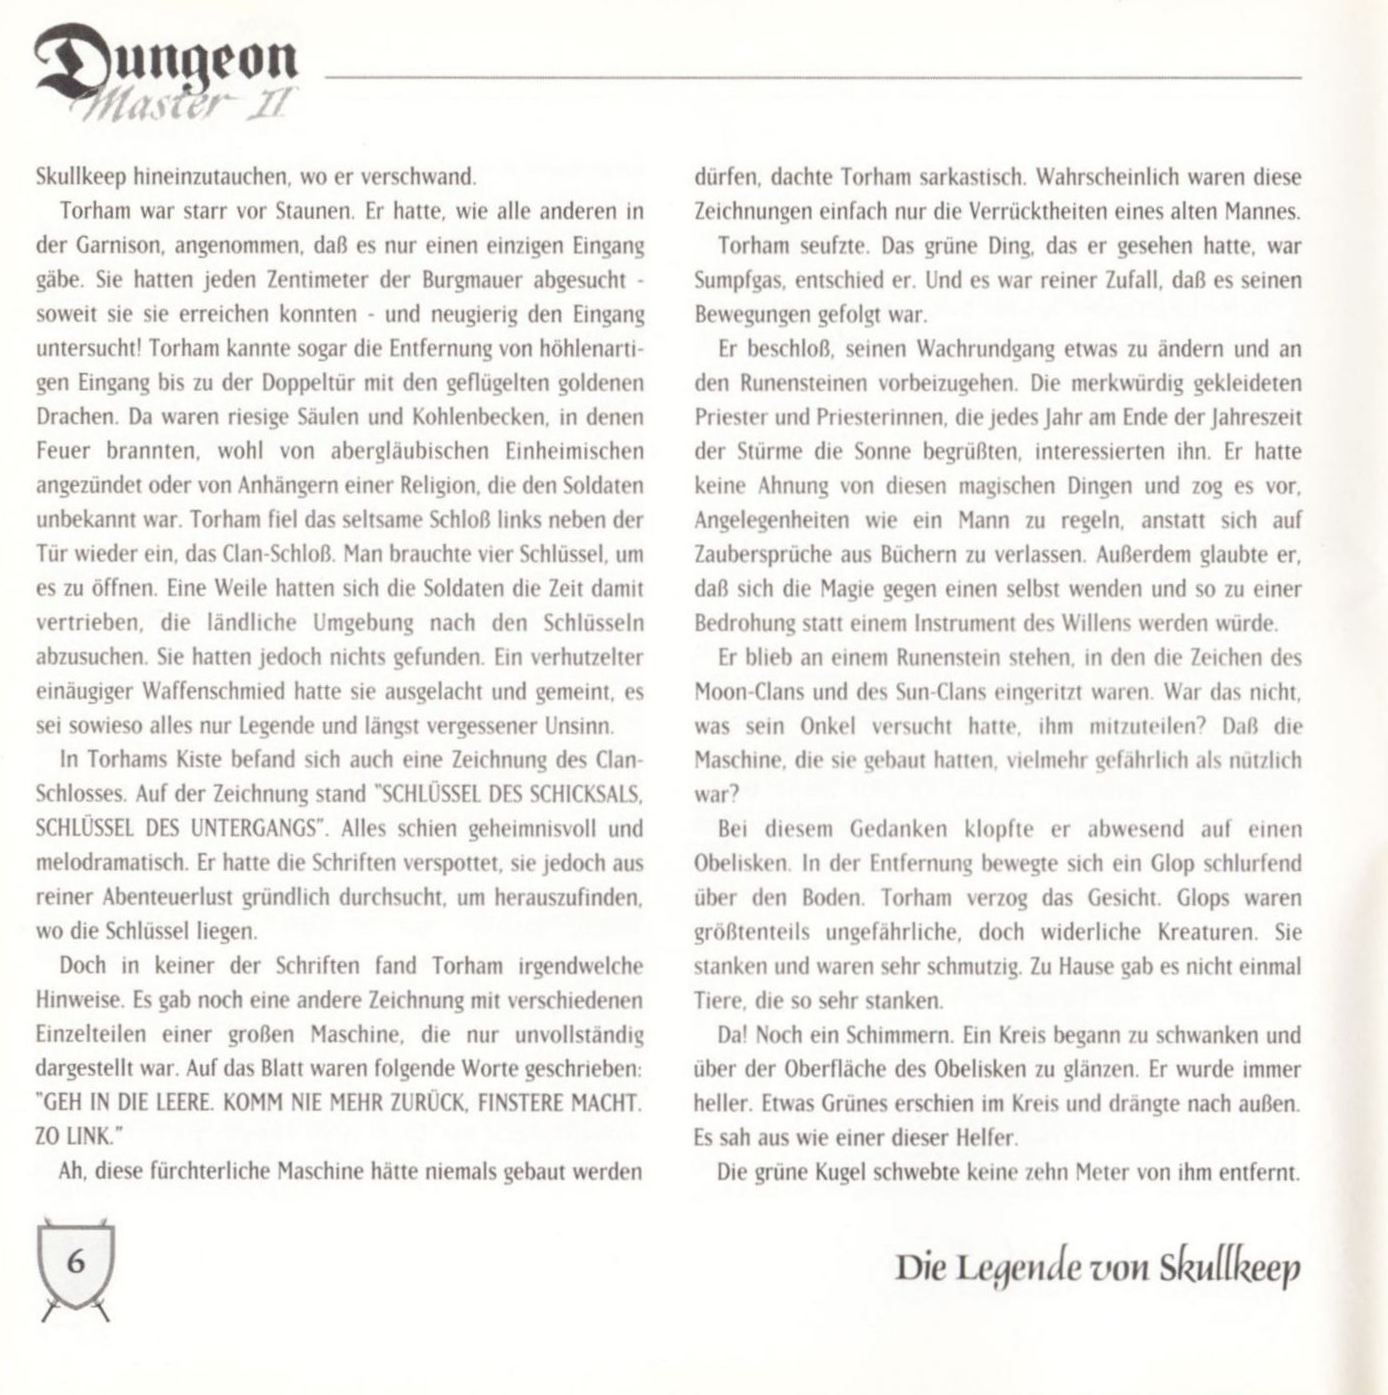 Game - Dungeon Master II - DE - PC - Blackmarket With Booklet - Booklet - Page 008 - Scan